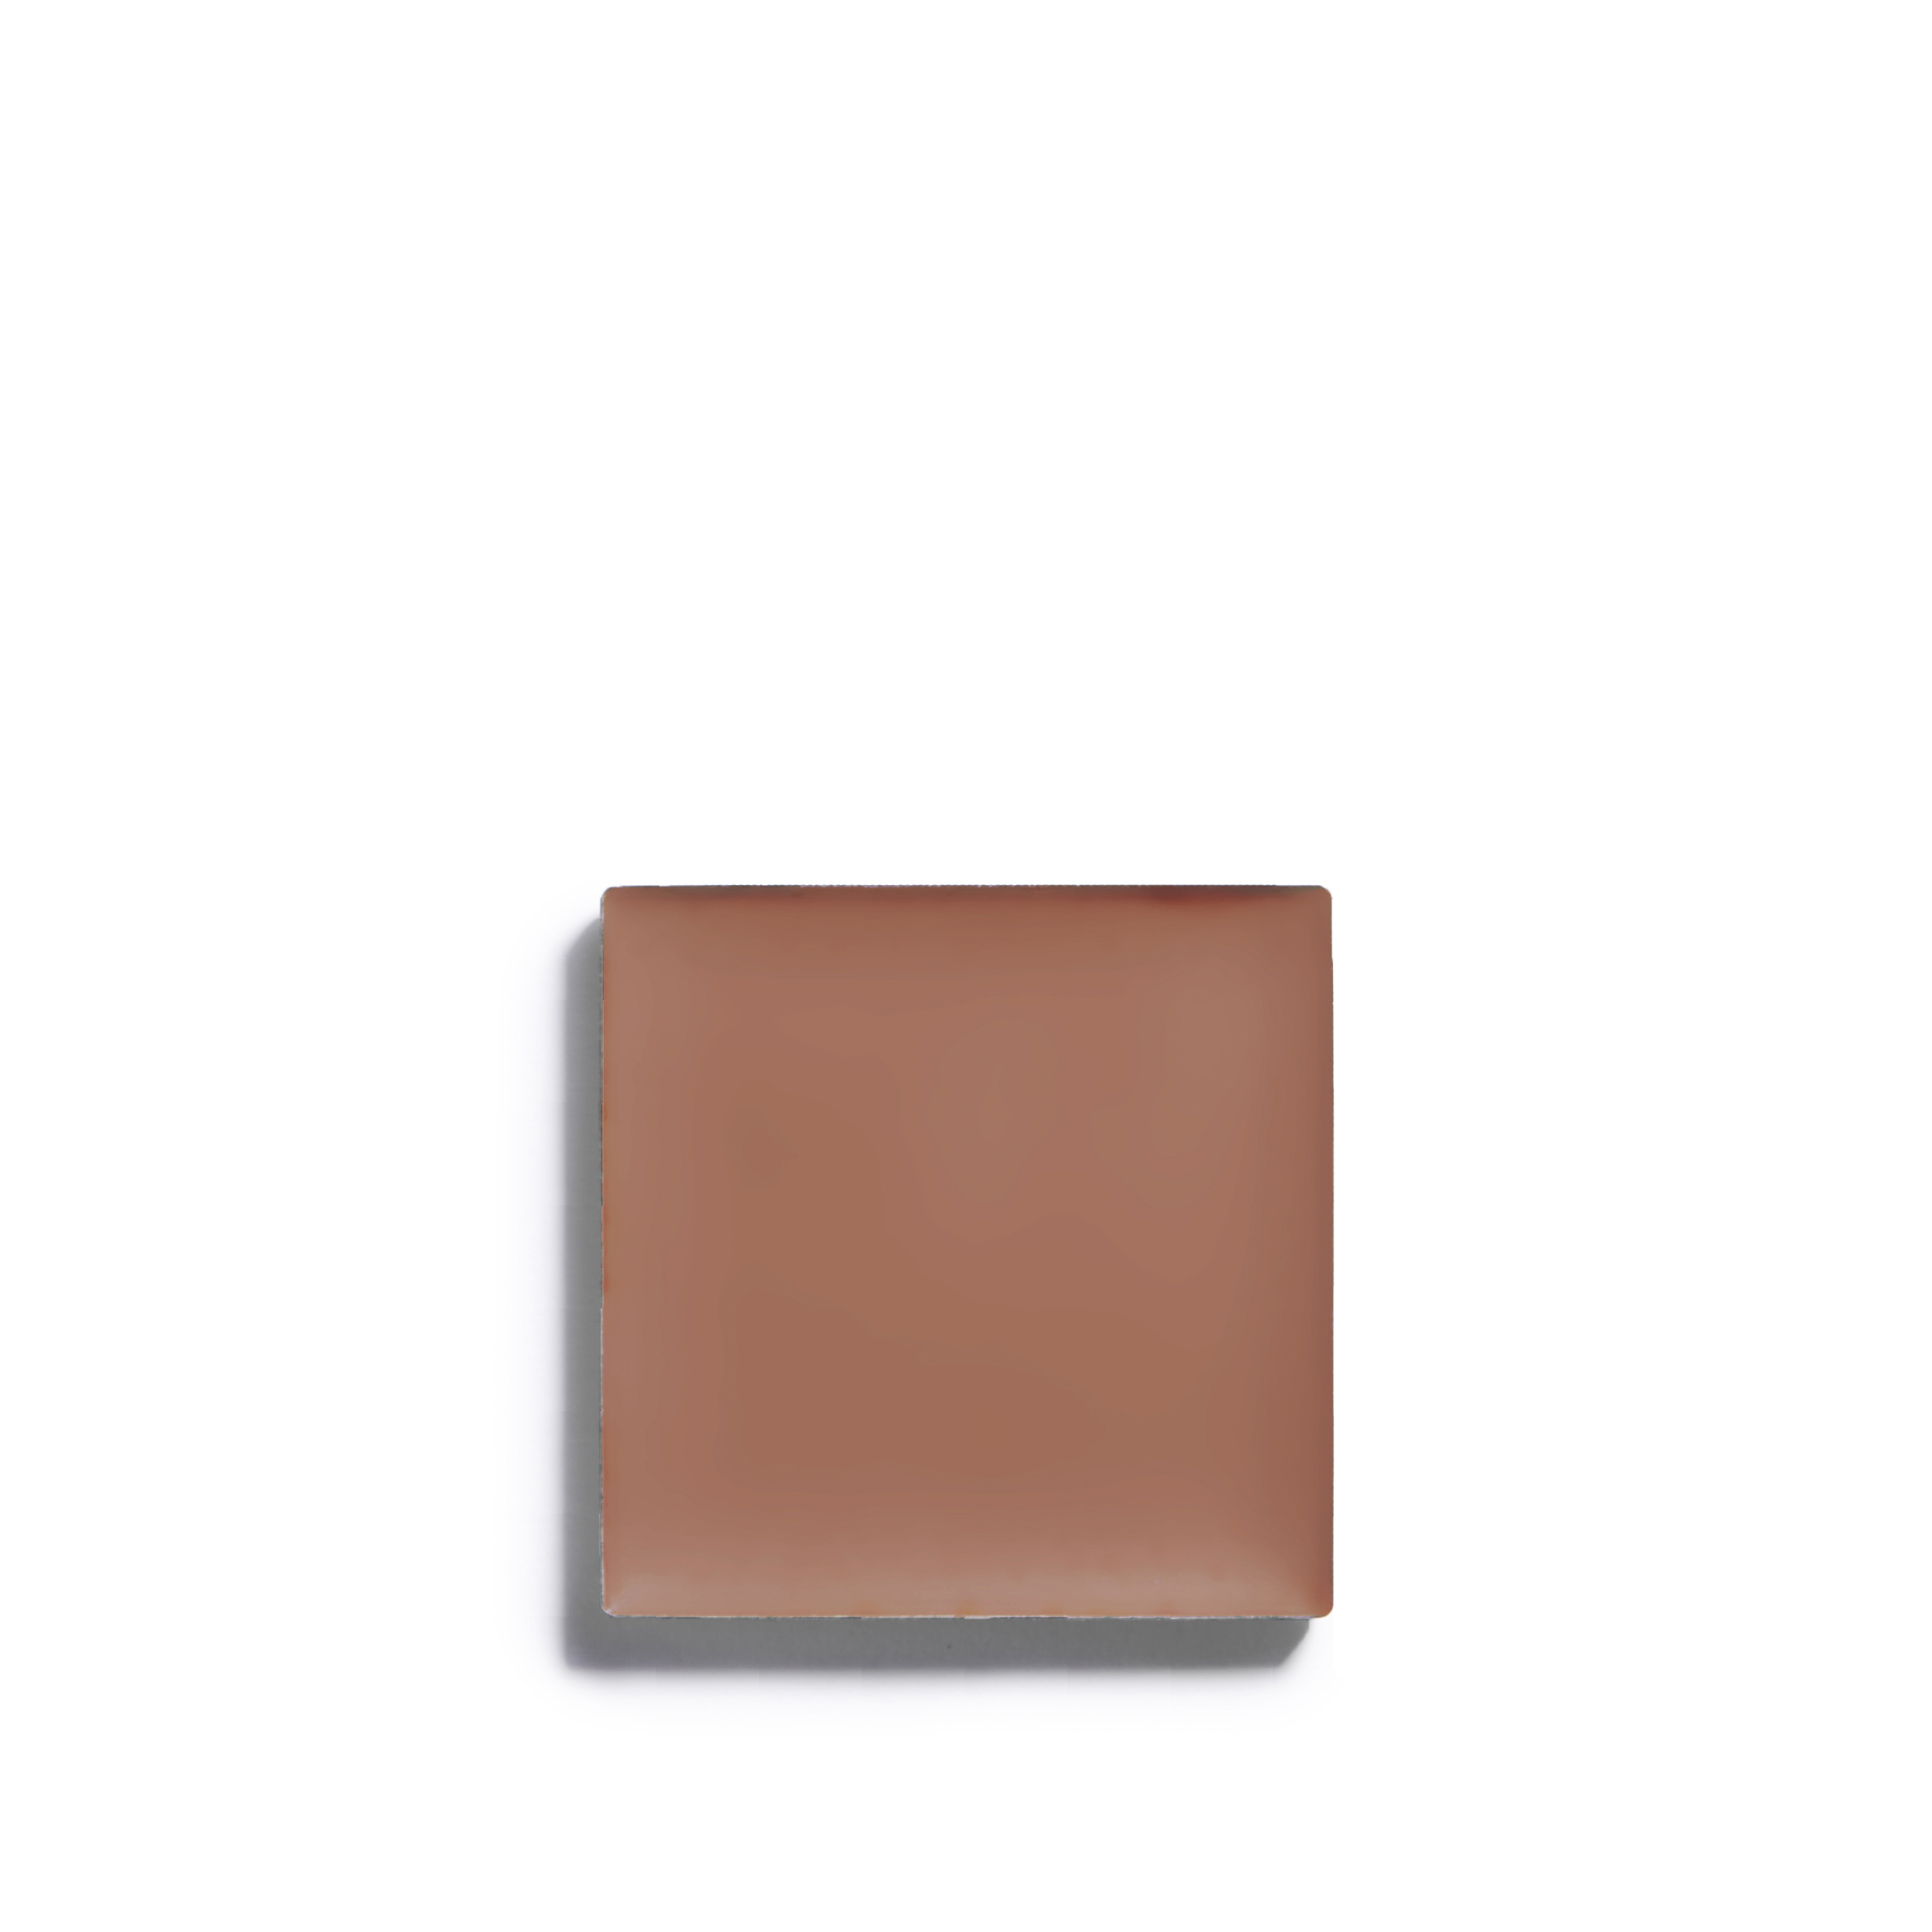 BLUSH PAN DesiredGlow